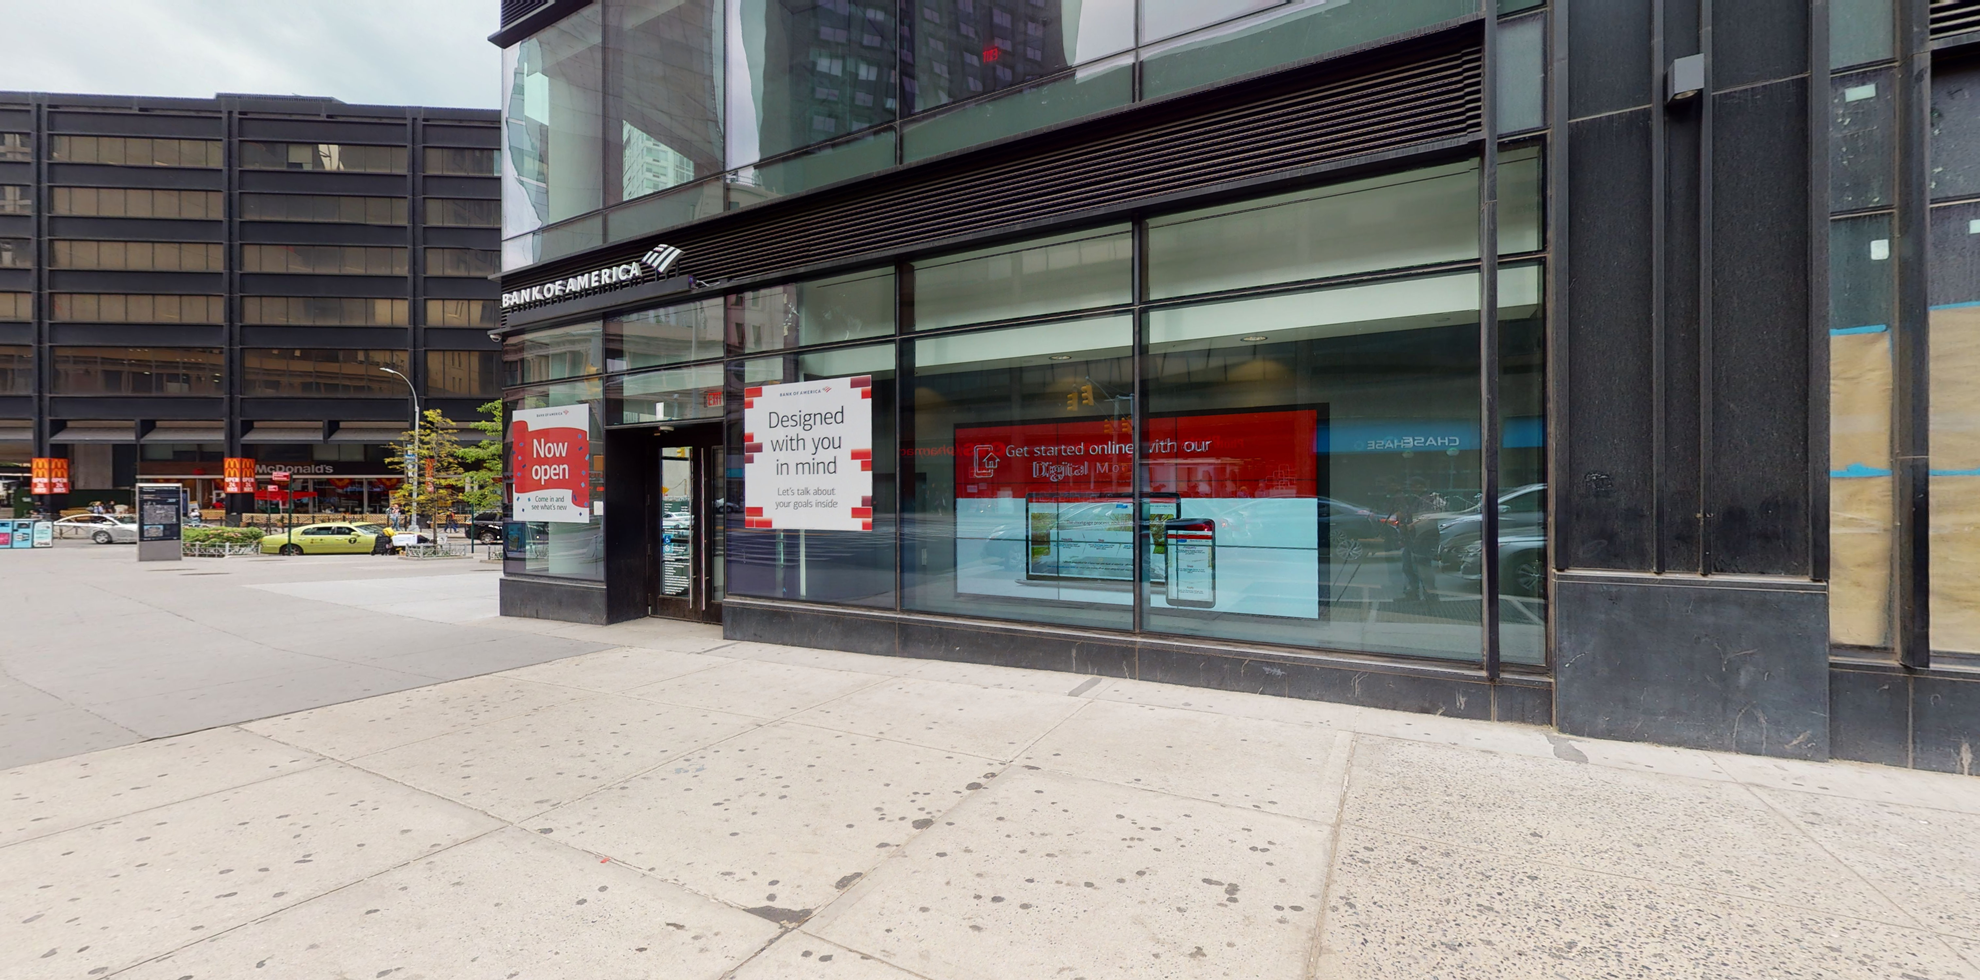 Bank of America financial center with walk-up ATM   1 Flatbush Ave, Brooklyn, NY 11217